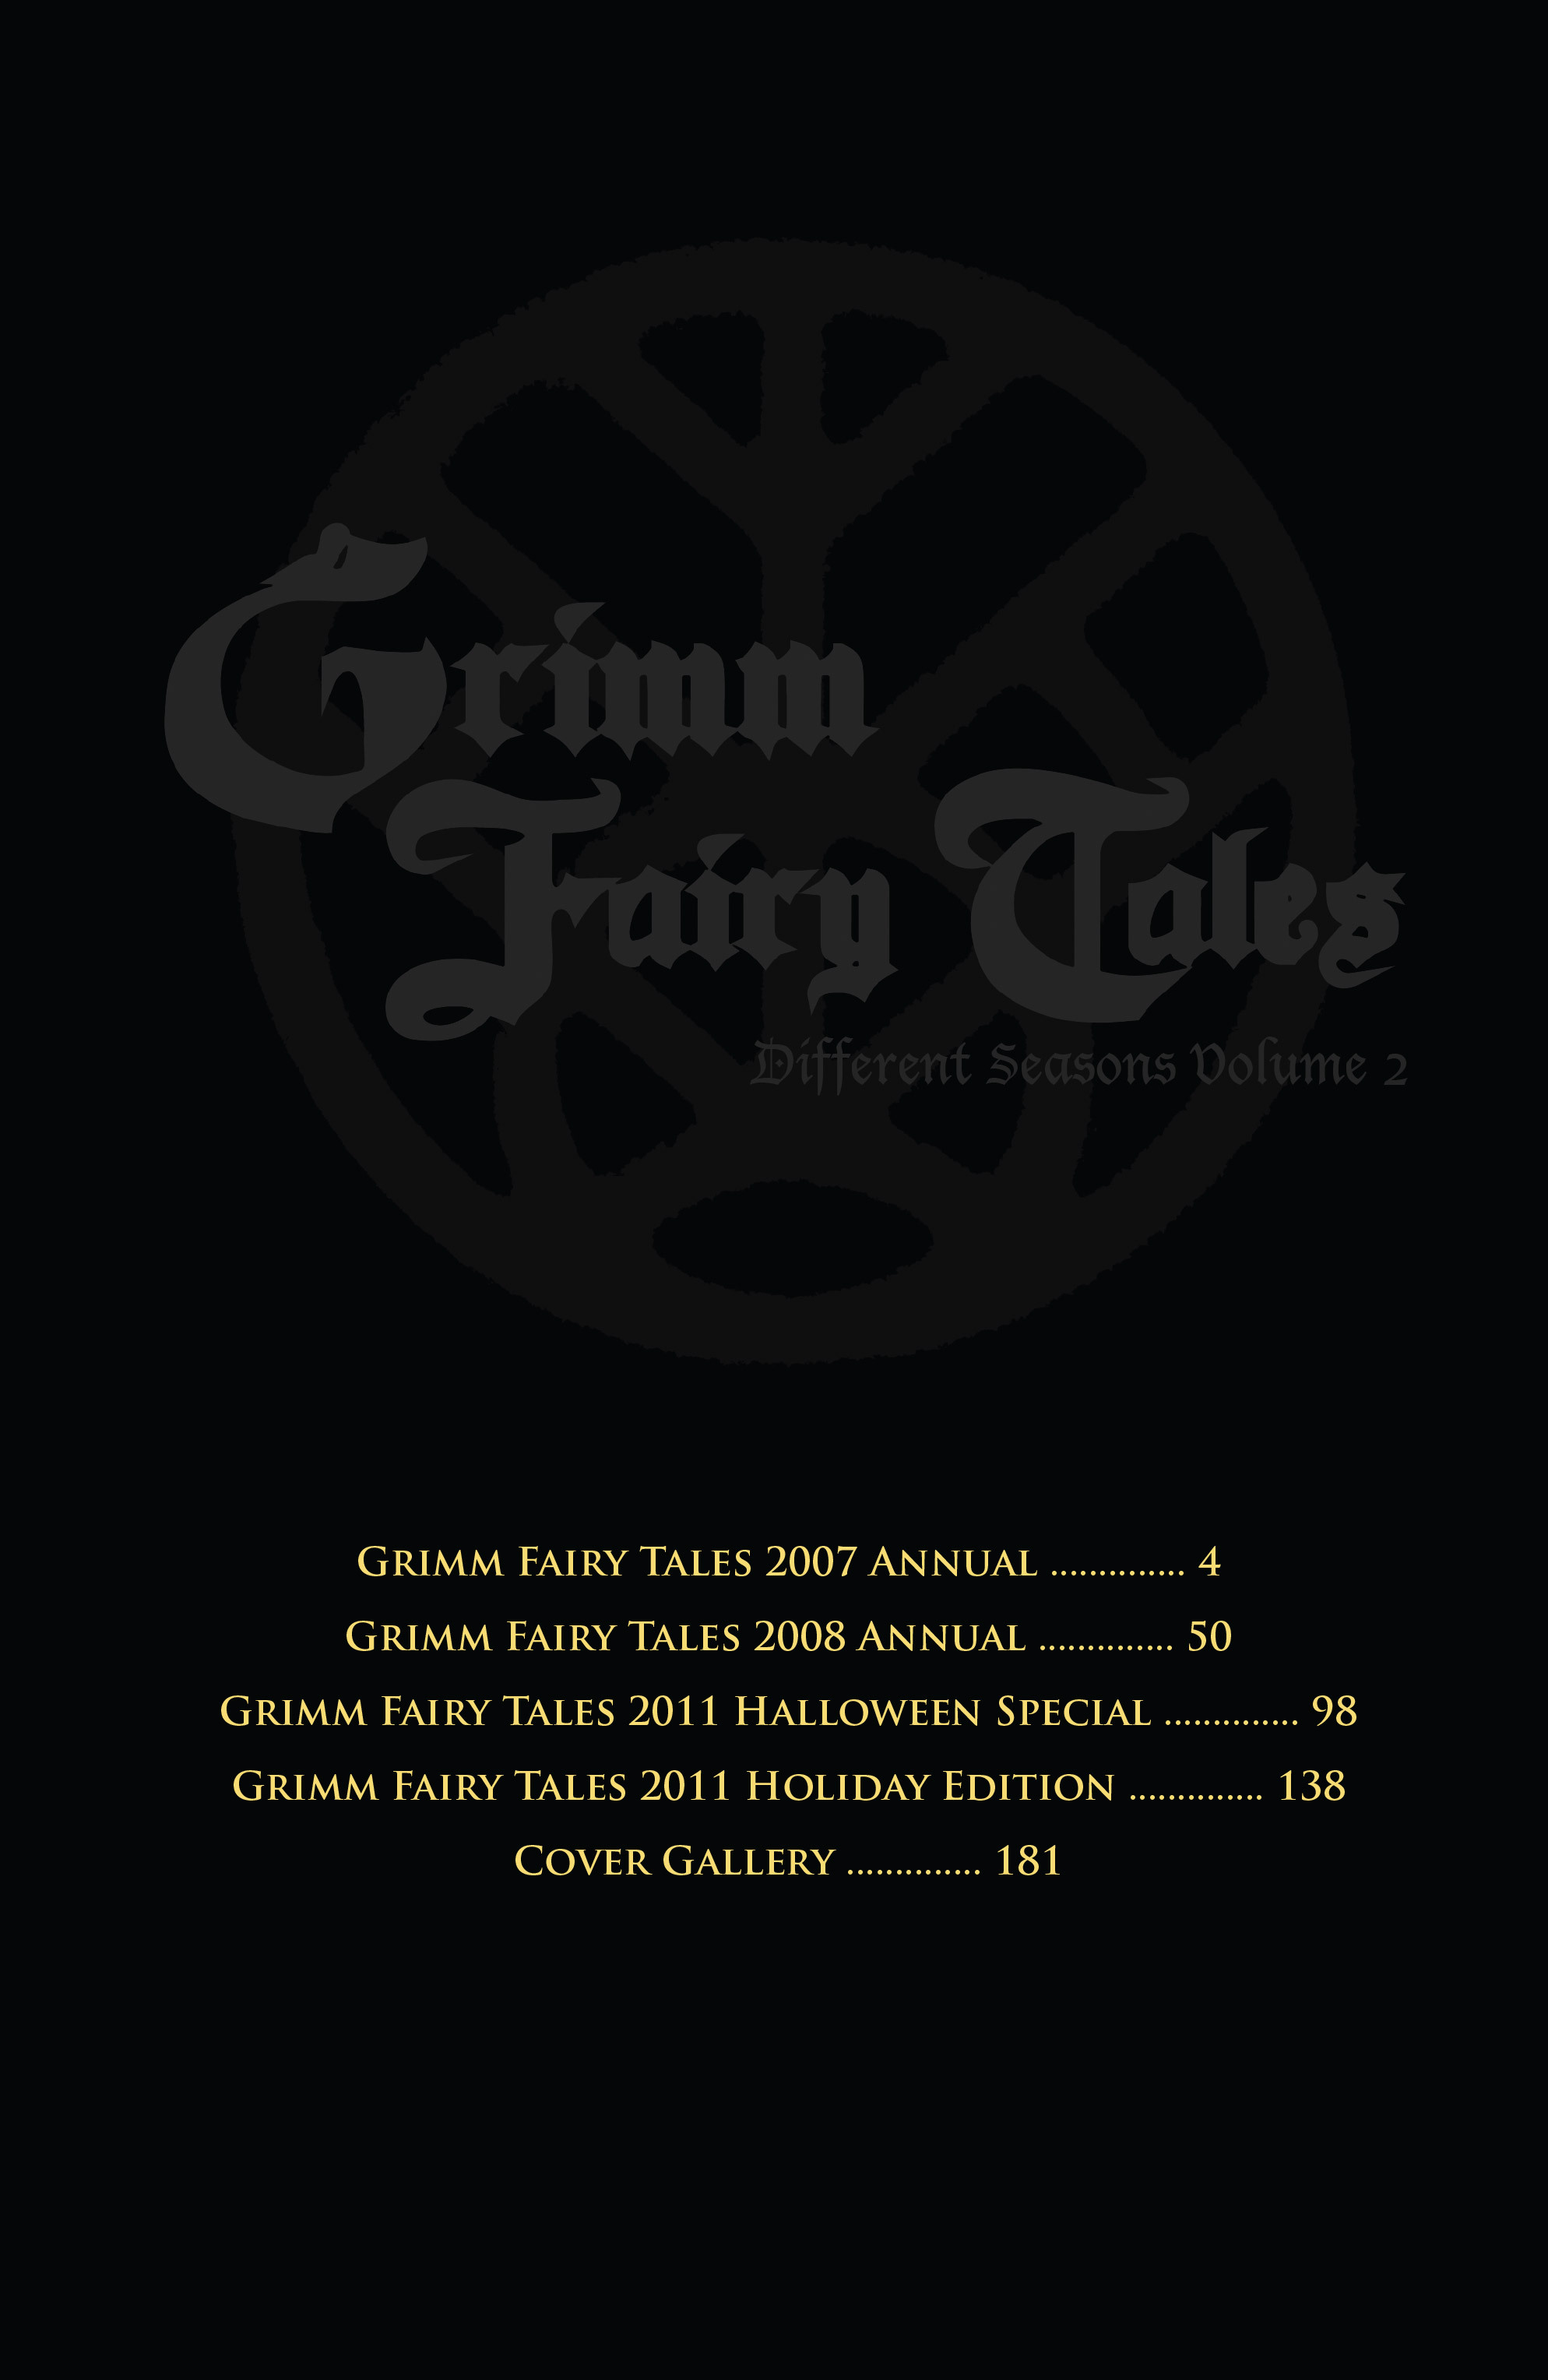 Read online Grimm Fairy Tales: Different Seasons comic -  Issue # TPB 2 - 4